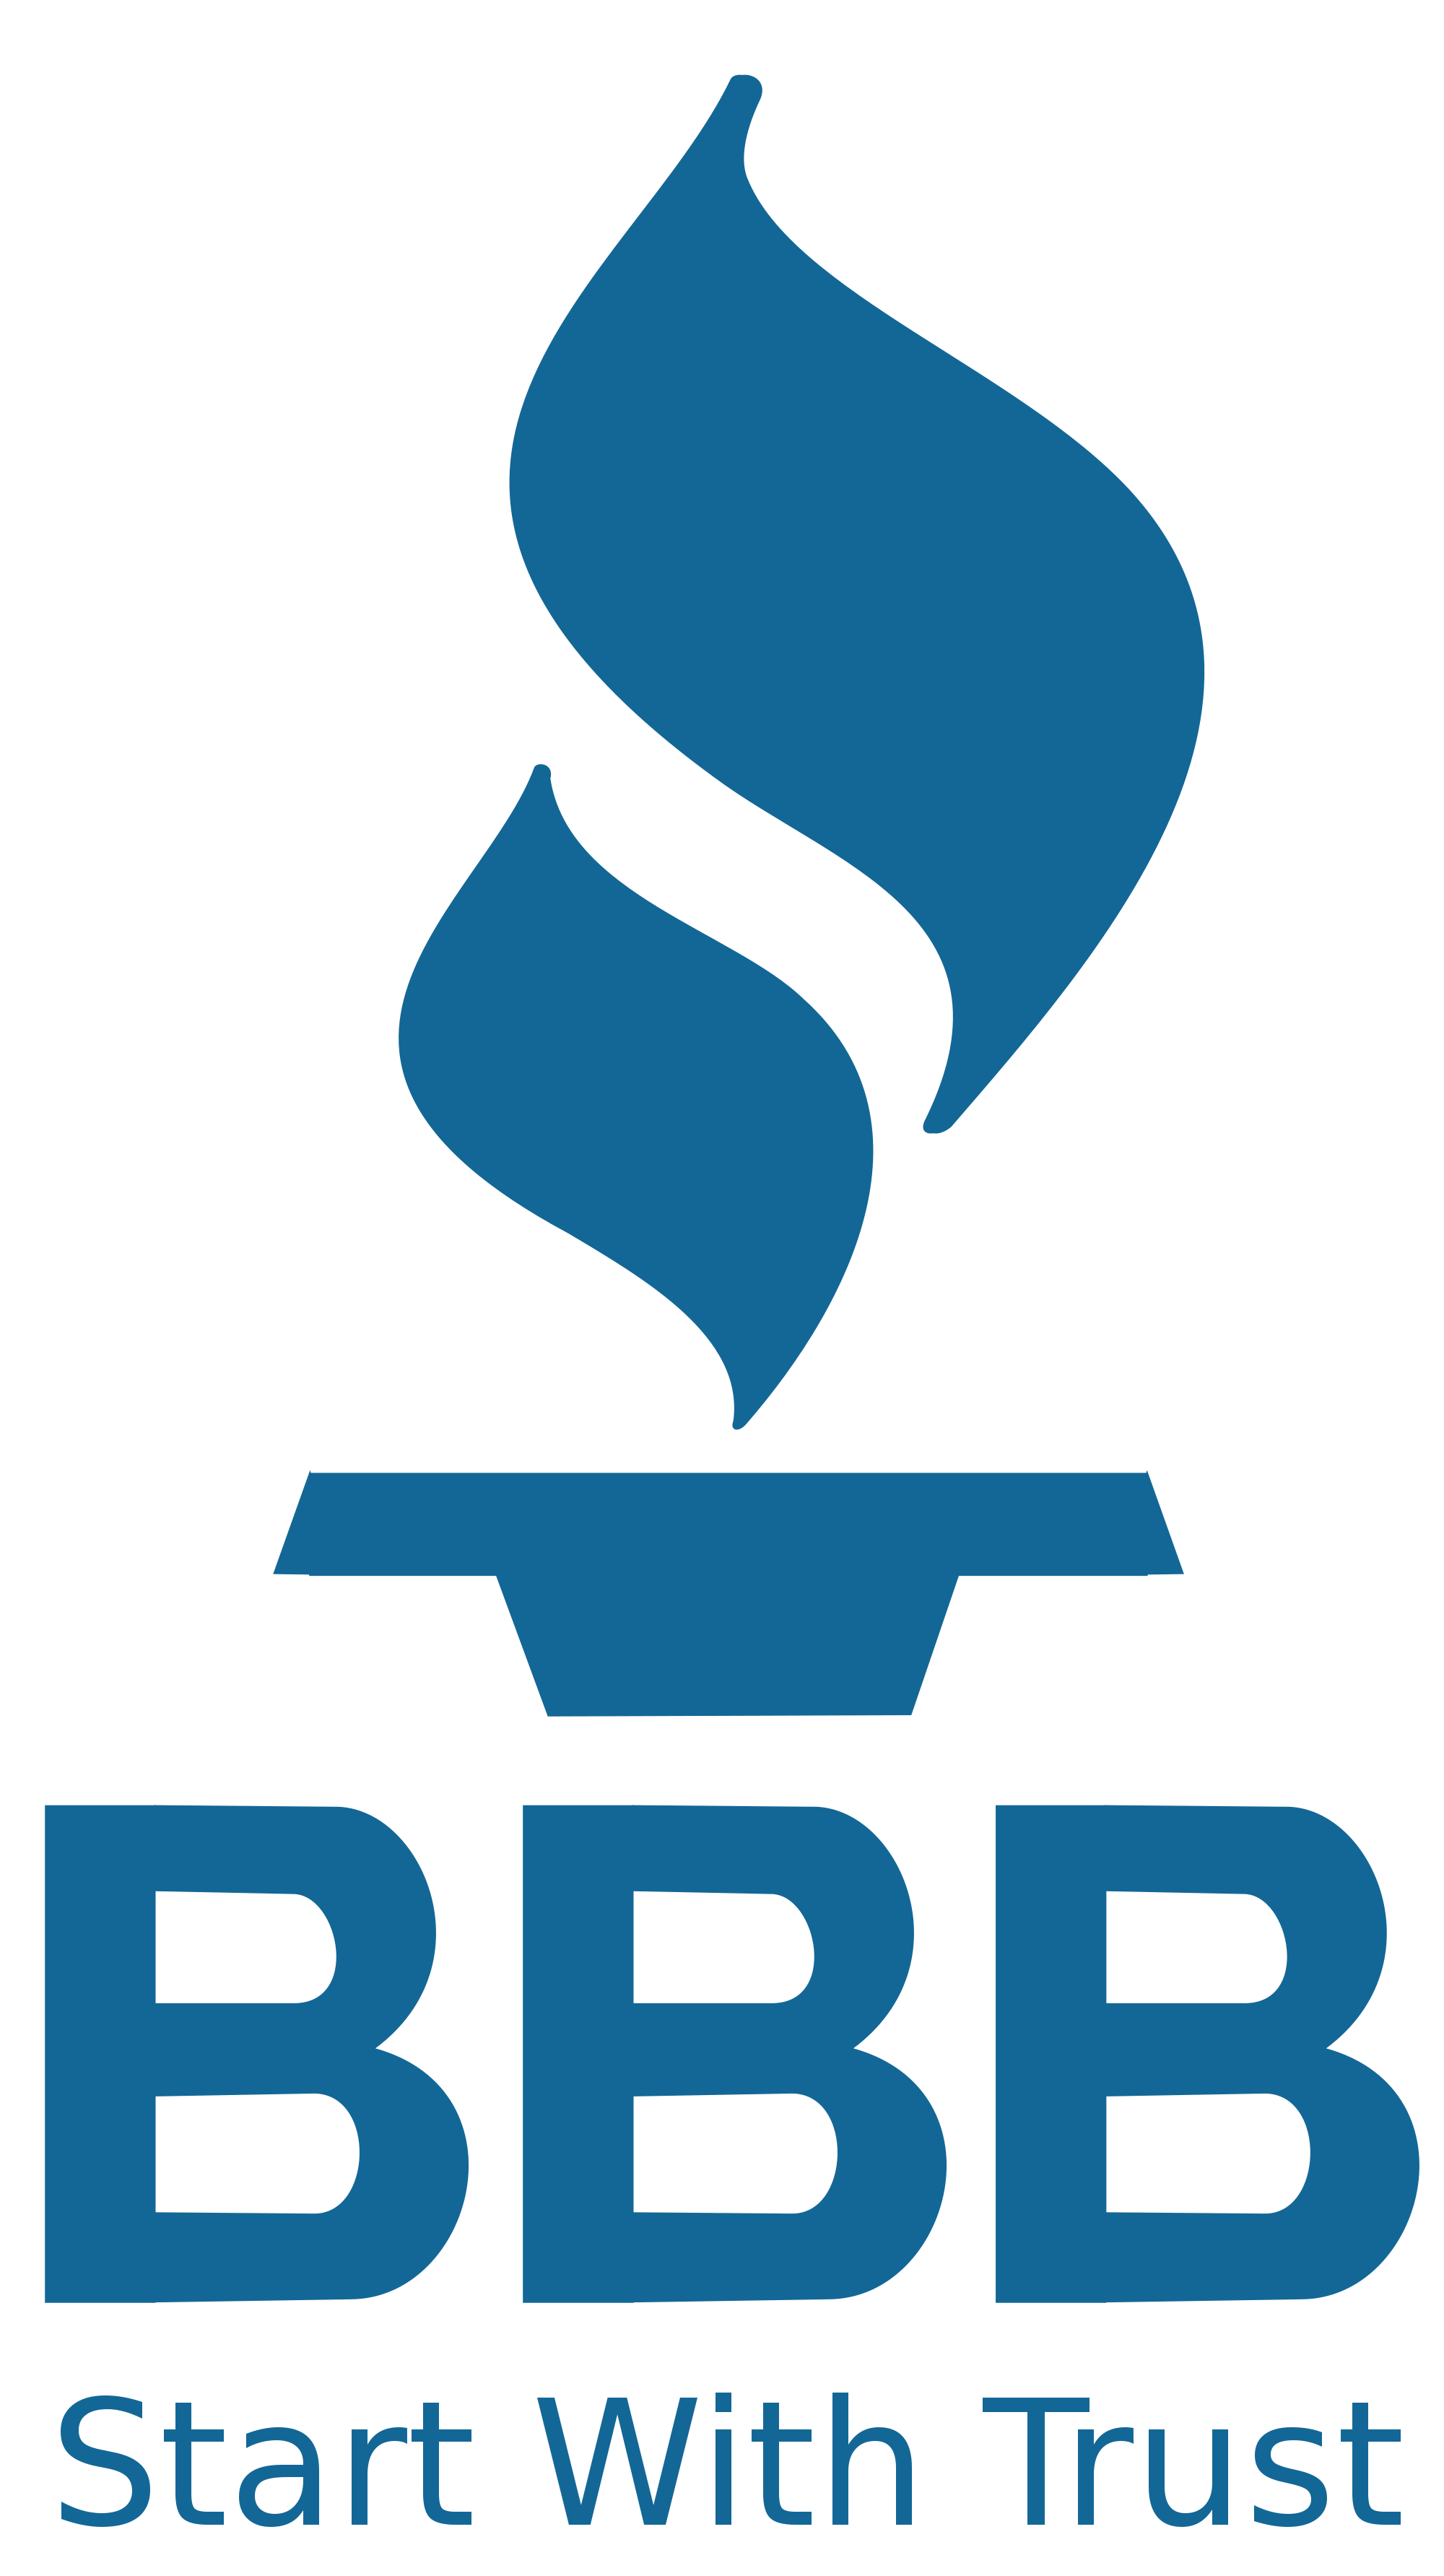 2000px-Better_Business_Bureau.svg